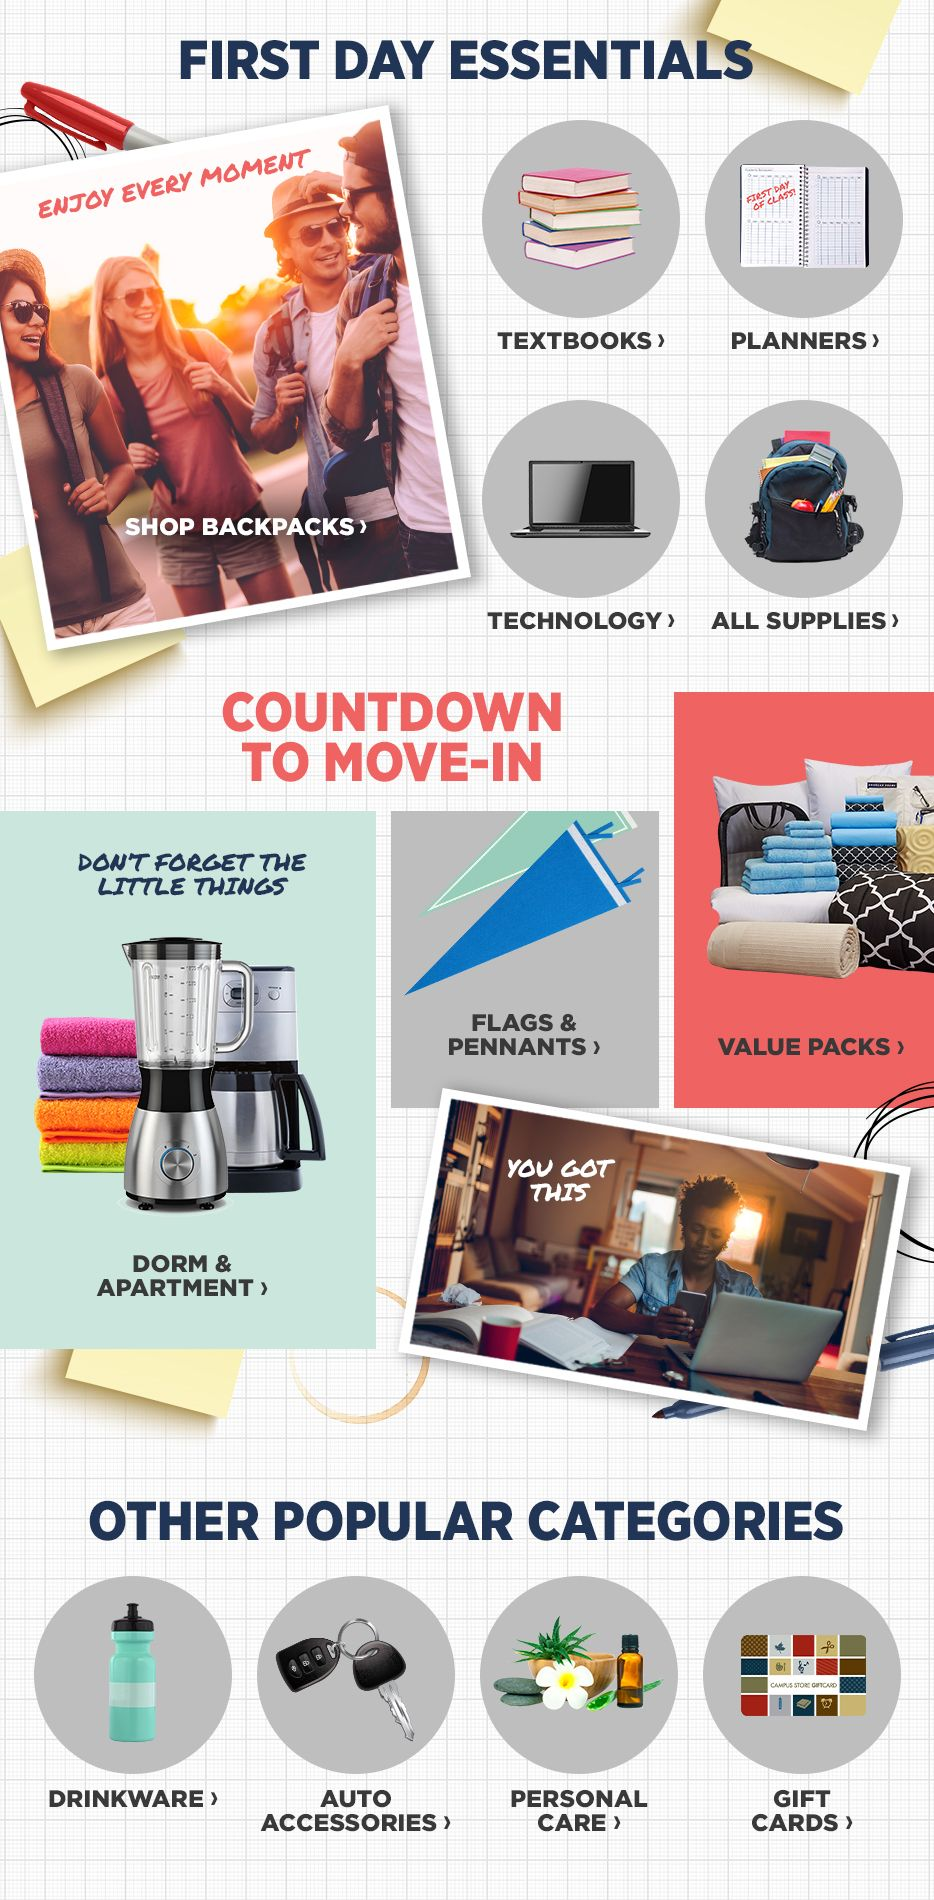 First Day Essentials. Shop Textbooks. Shop Planners. Shop Technology. Shop All Supplies. Countdown to Move-In. Shop Dorm & Apartment. Shop Flags & Pennants. Shop Value Packs. Other Popular Categories. Shop Drinkware. Shop Auto Accessories. Shop Personal Care. Shop Gift Cards.